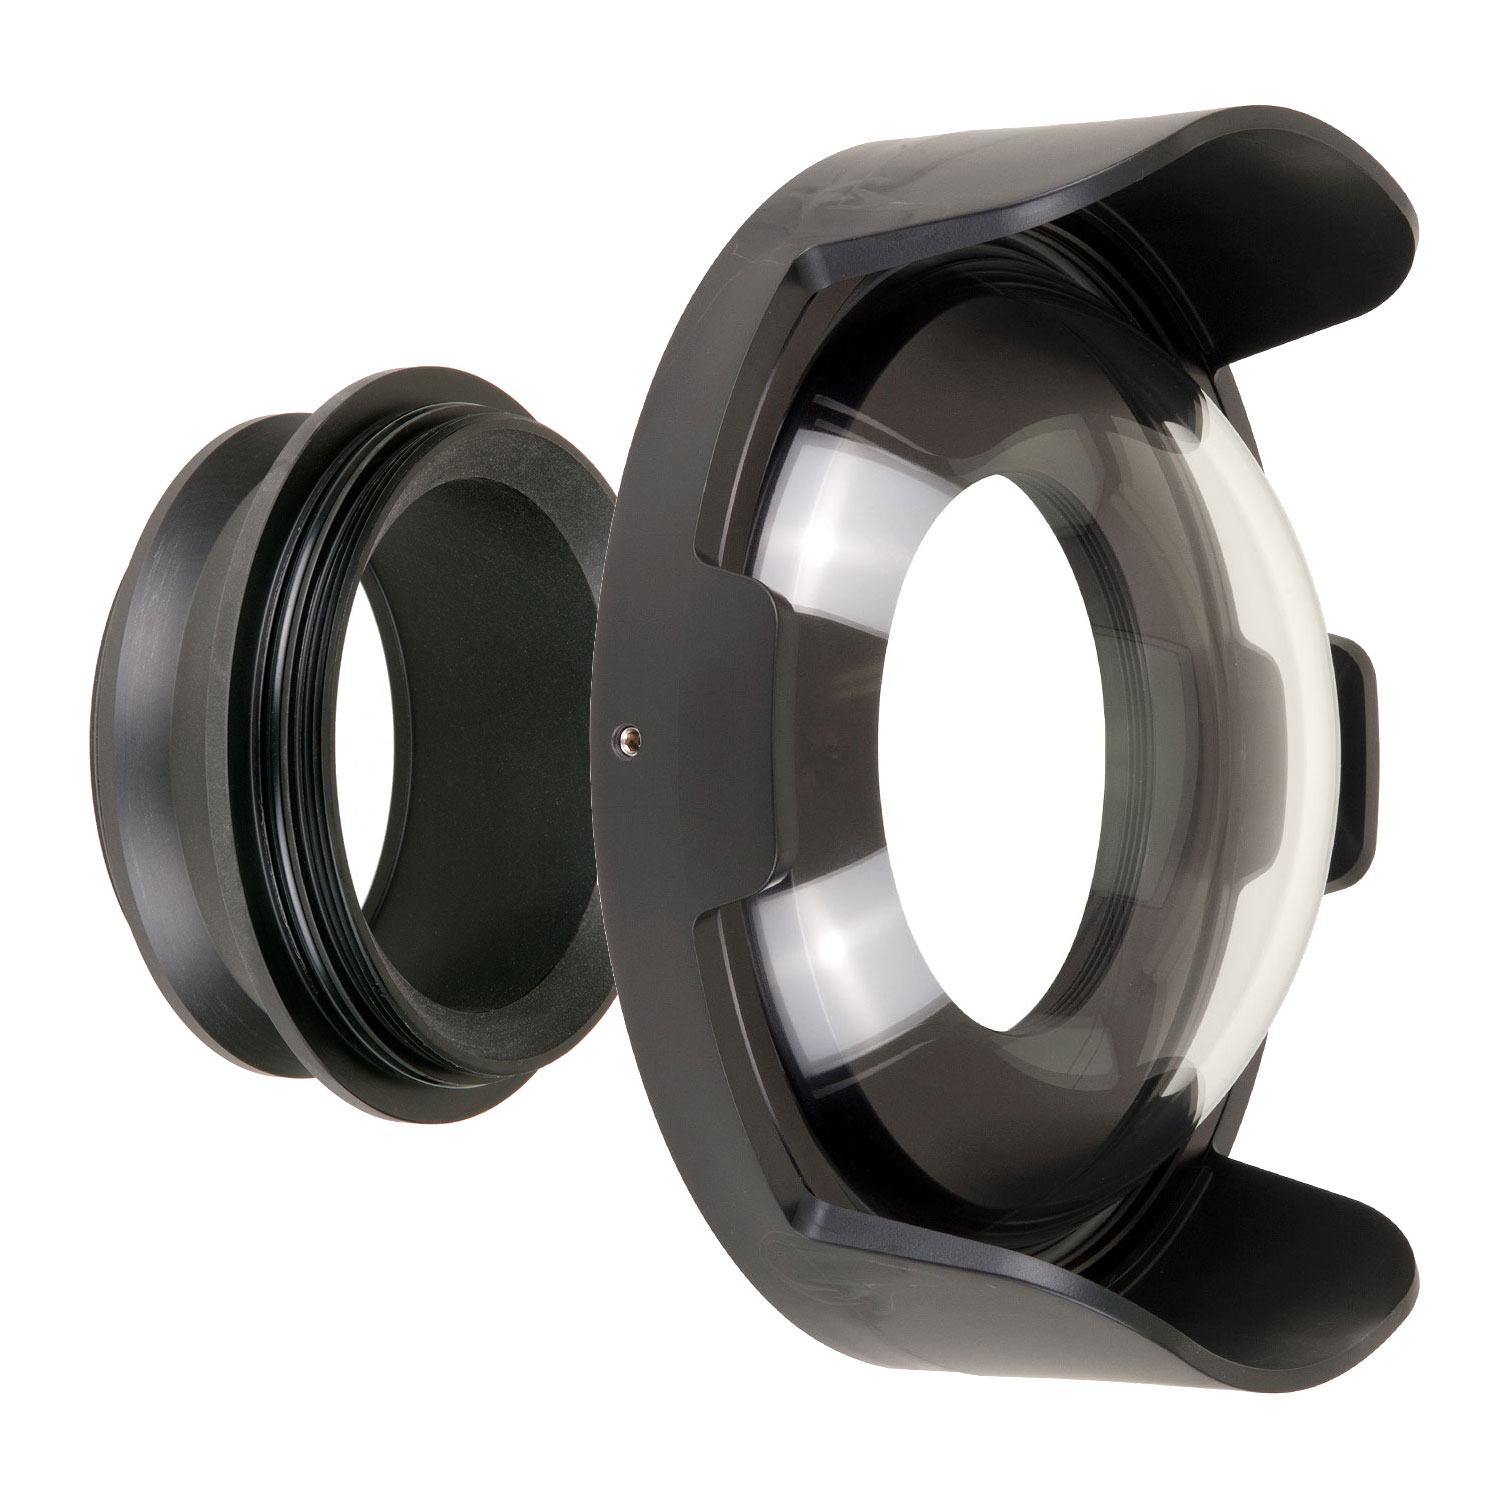 Ikelite FL 8 inch Dome Kit for Lenses Up To 3.5 Inches by Ikelite